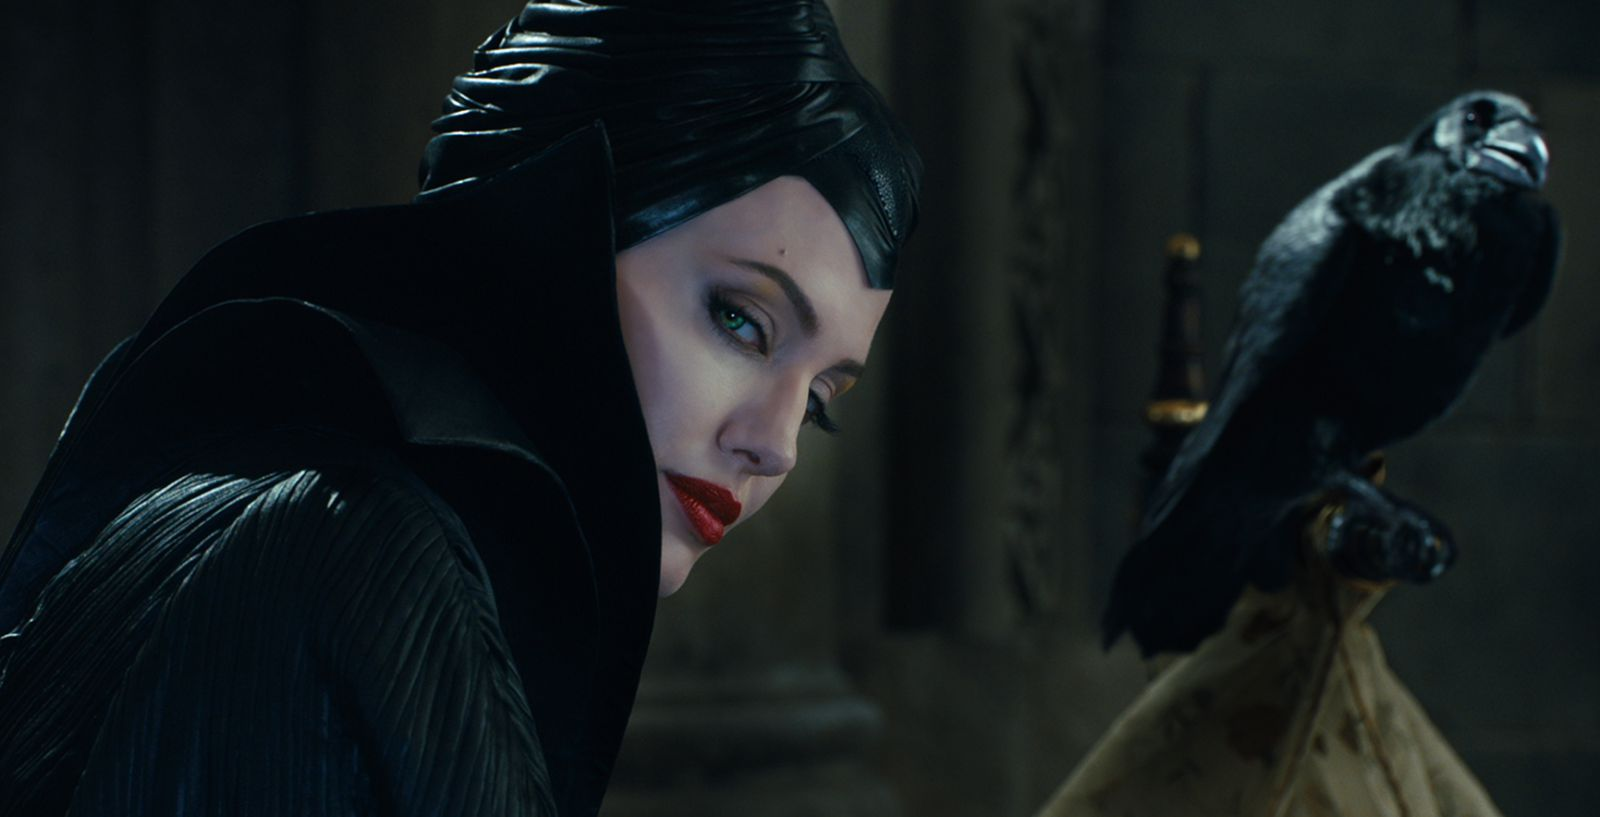 http://www.cinemafia.ru/upload/images/2014-05/537d2aea841dafe0146aa91a_maleficent-5.jpg